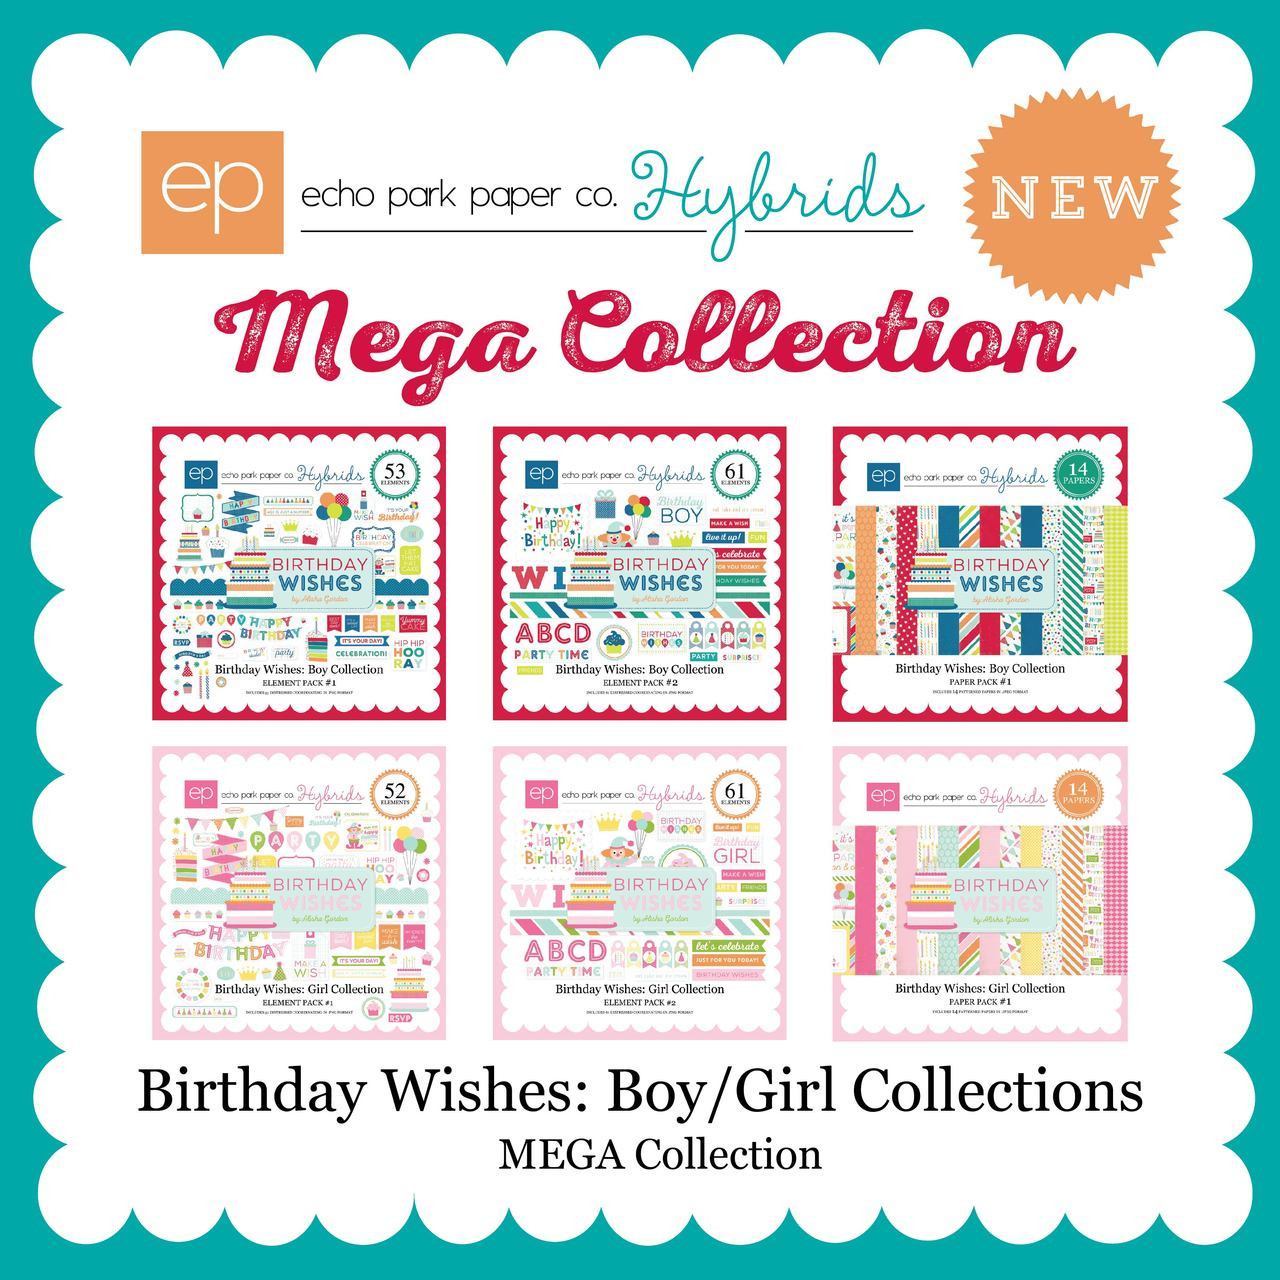 birthday wishes boy girl mega collection snap click supply co